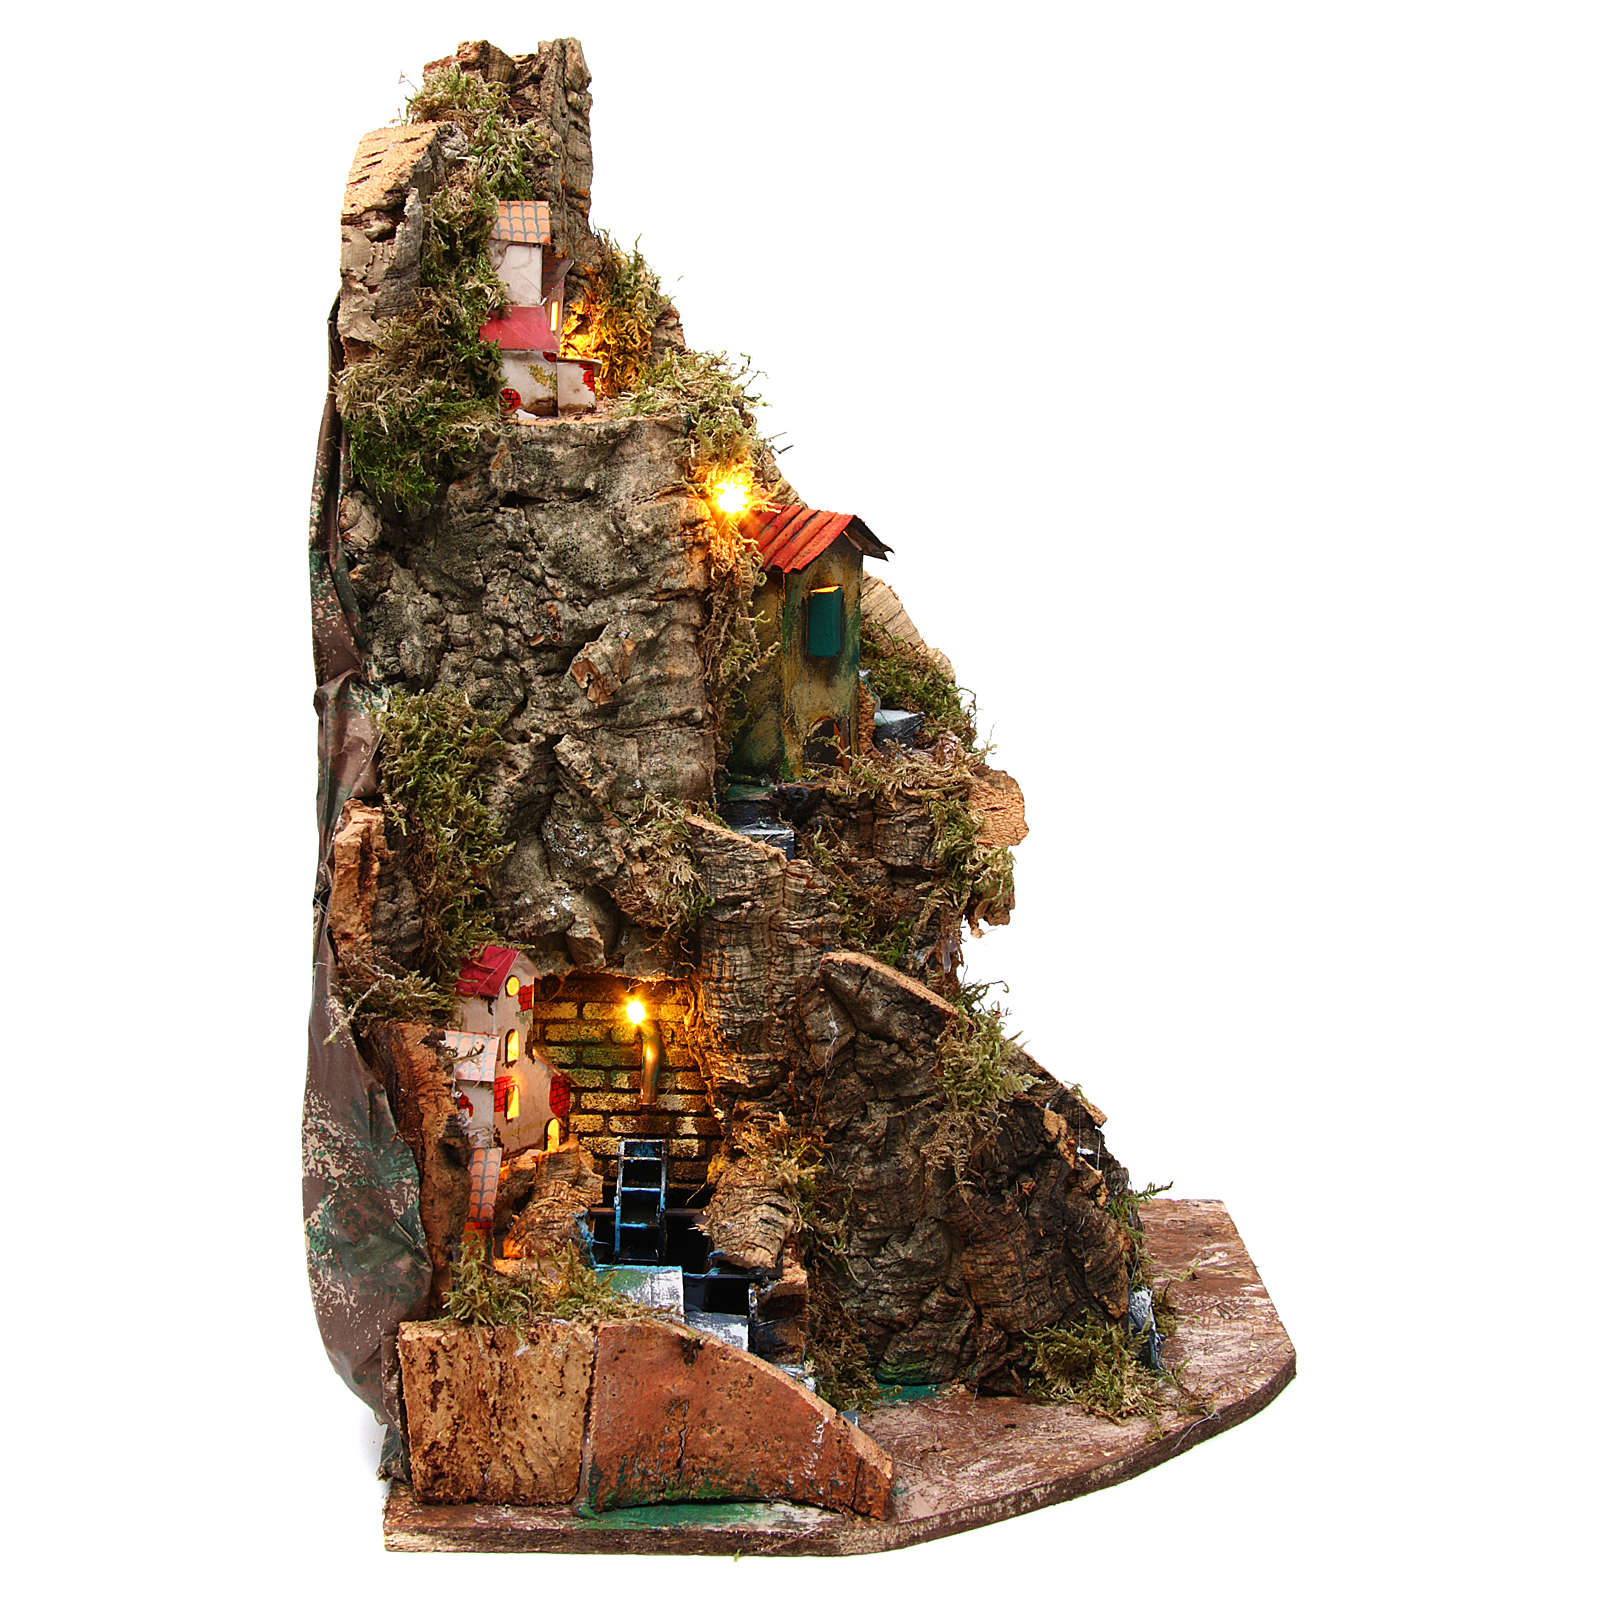 Nativity scene corner setting village with water mill 30x30x45 cm for 6-8 cm characters 4